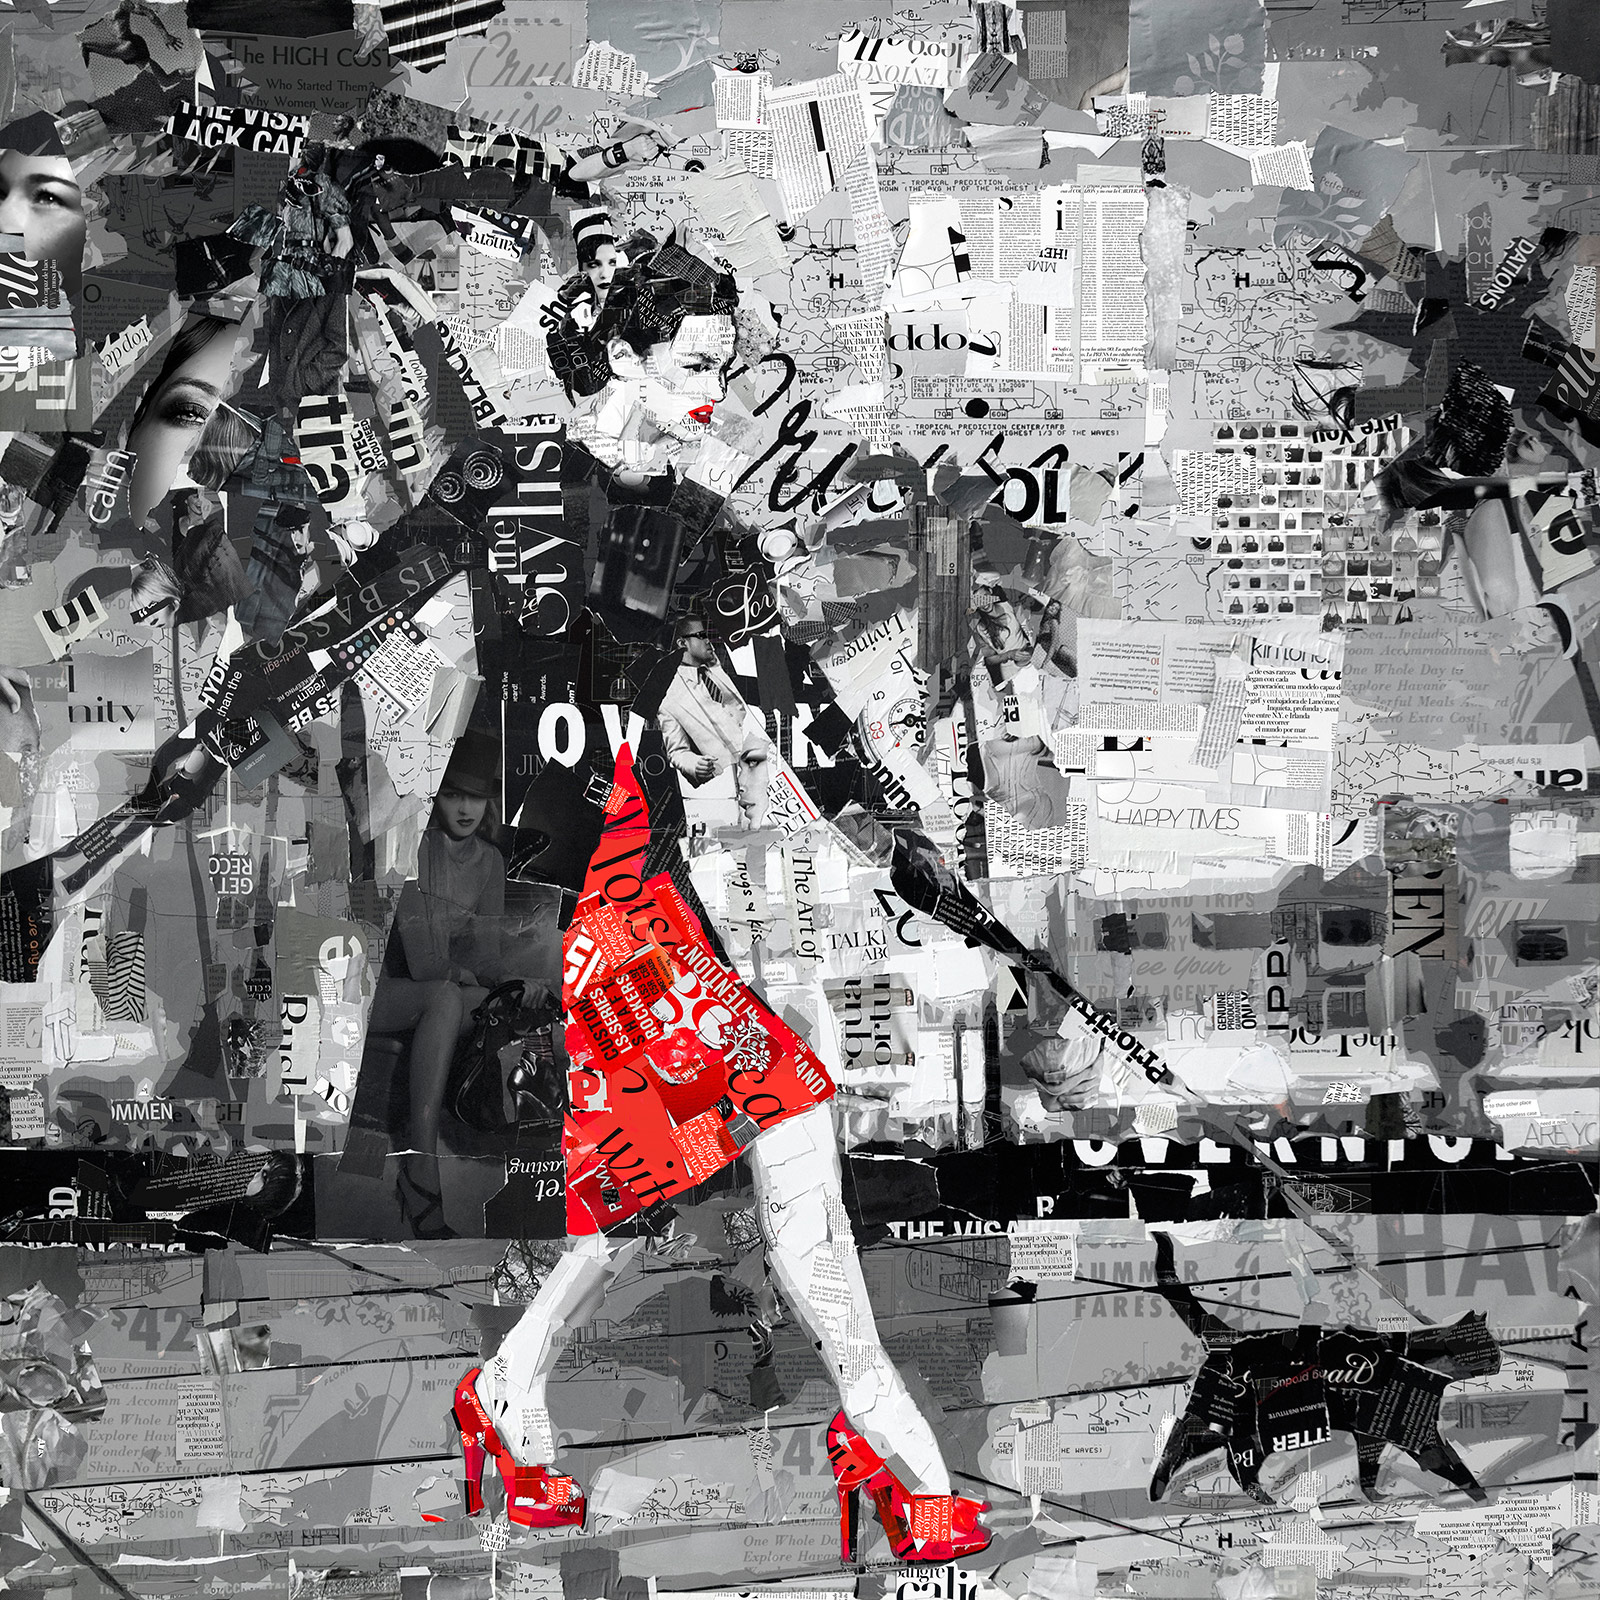 Art of the Day - Derek Gores